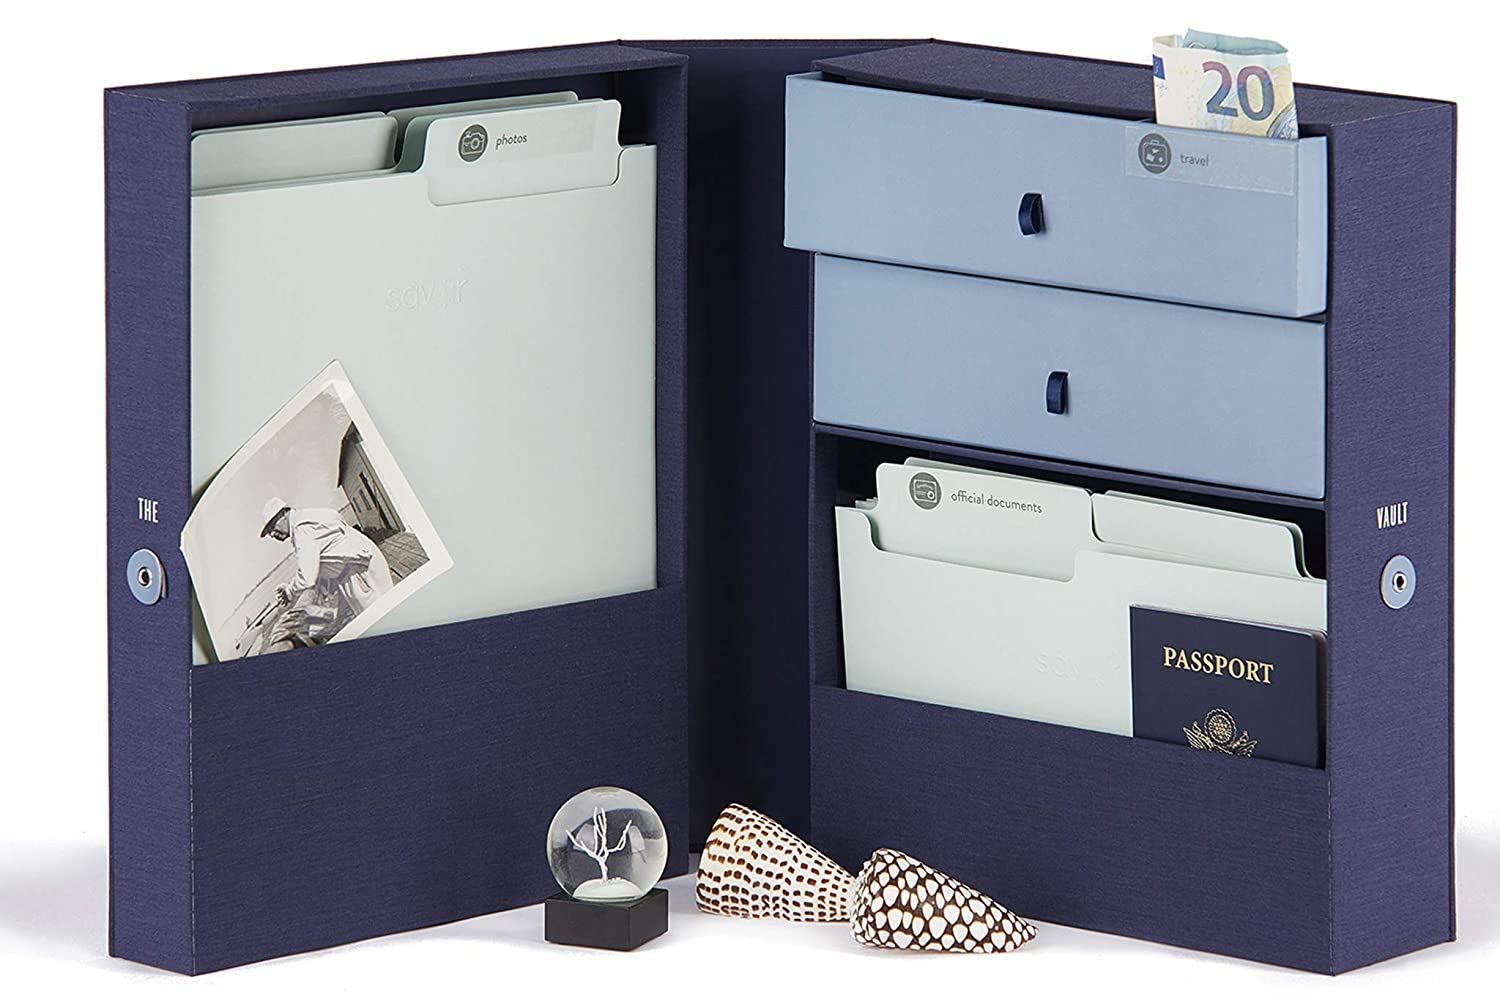 Savor All-in-One Fabric Desk Organizer Storage System-The Vault-Filing system holds Important Documents and Objects including passports, money, keepsakes, letters, collections, office supplies, photos